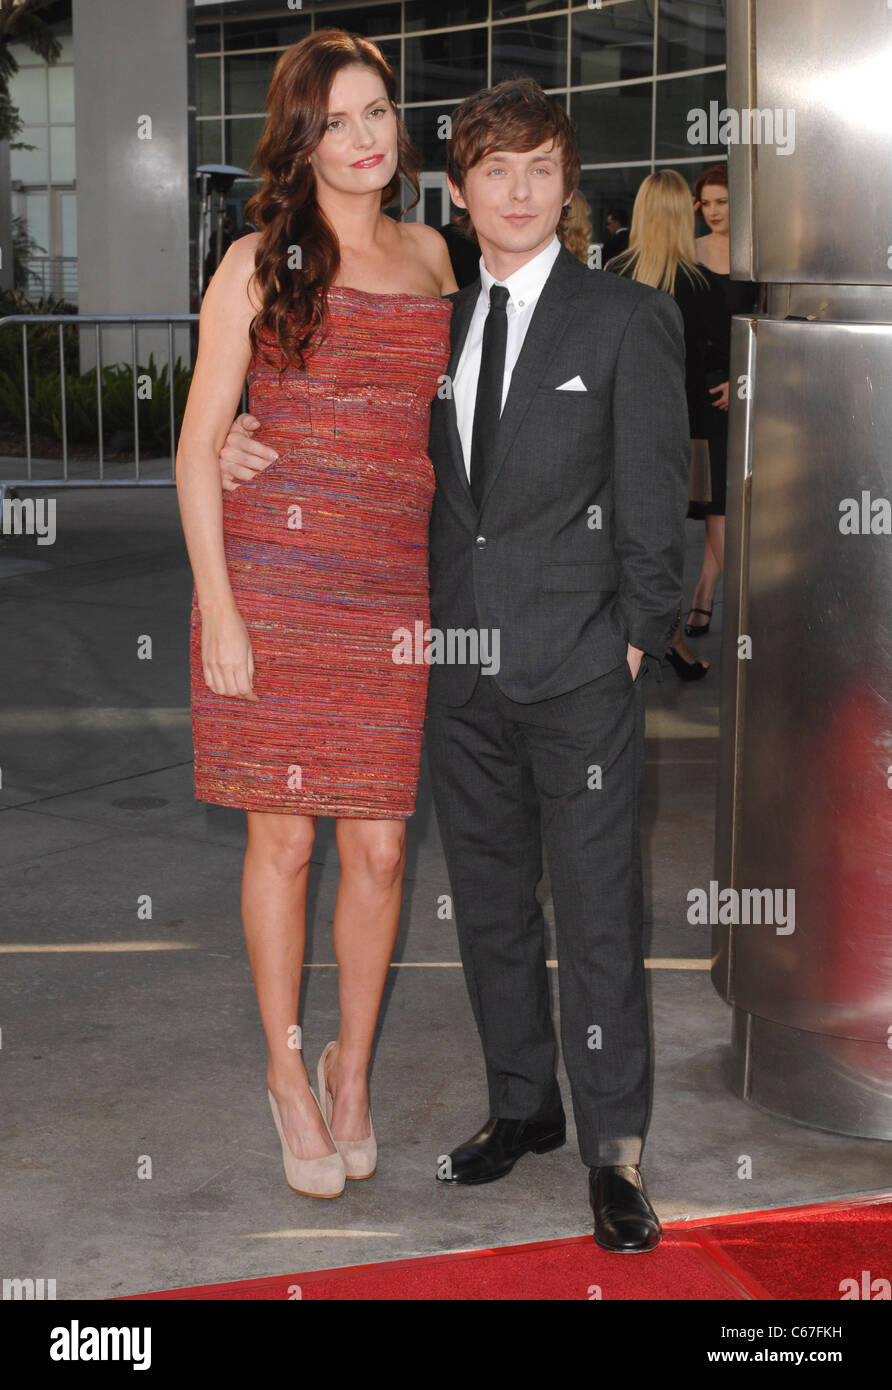 Anne Jamie, Marshall Allman at arrivals for TRUE BLOOD Season Four Premiere on HBO, Arclight Cinerama Dome, Los - Stock Image